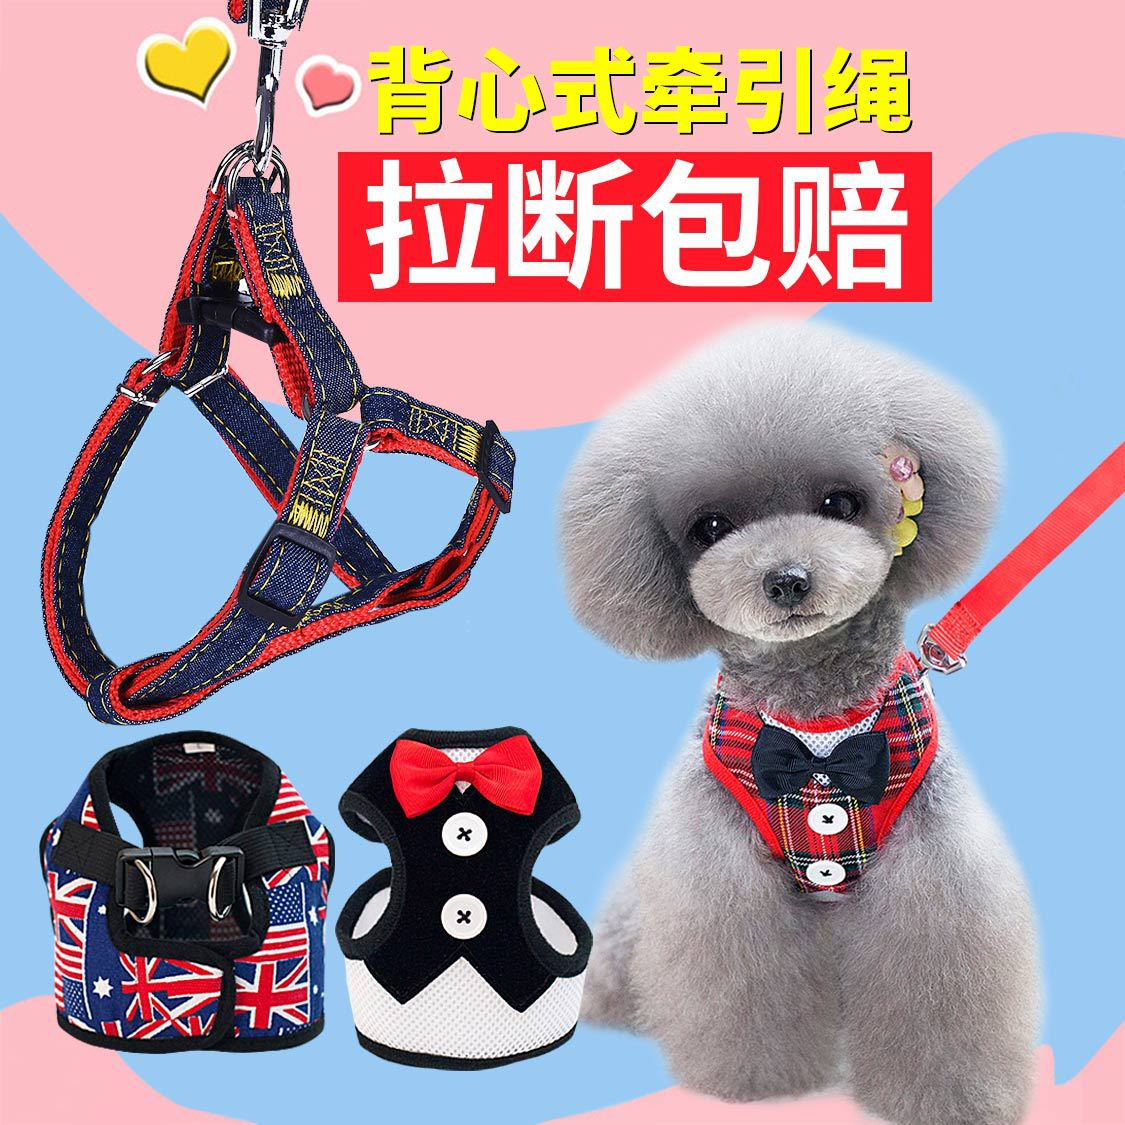 Nursing-Rope Chest And Back Hand Holding Rope Dog Dog Traction Rope Vest Dog Pet Chain Small Dogs Unscalable Dog